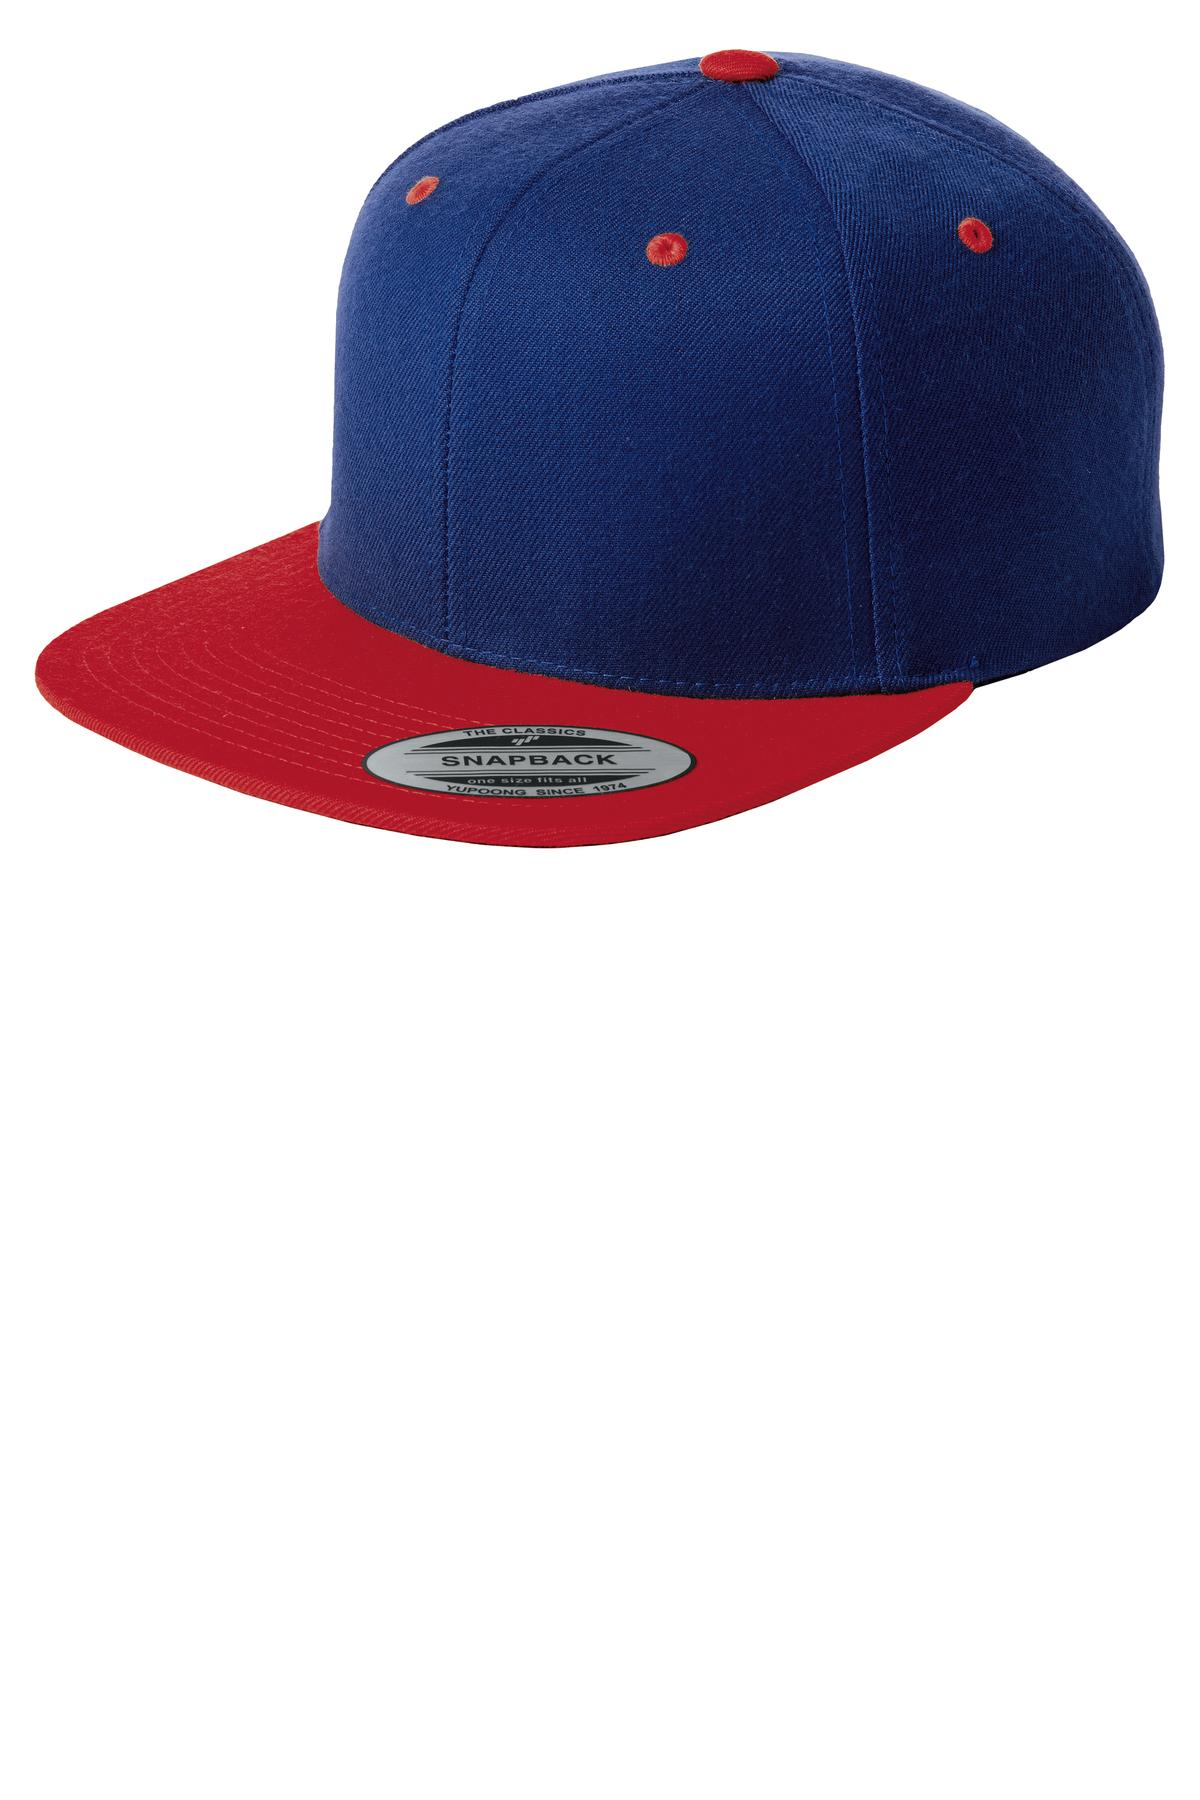 Sport-Tek ®  Yupoong ®  Flat Bill Snapback Cap. STC19 - True Royal/ True Red